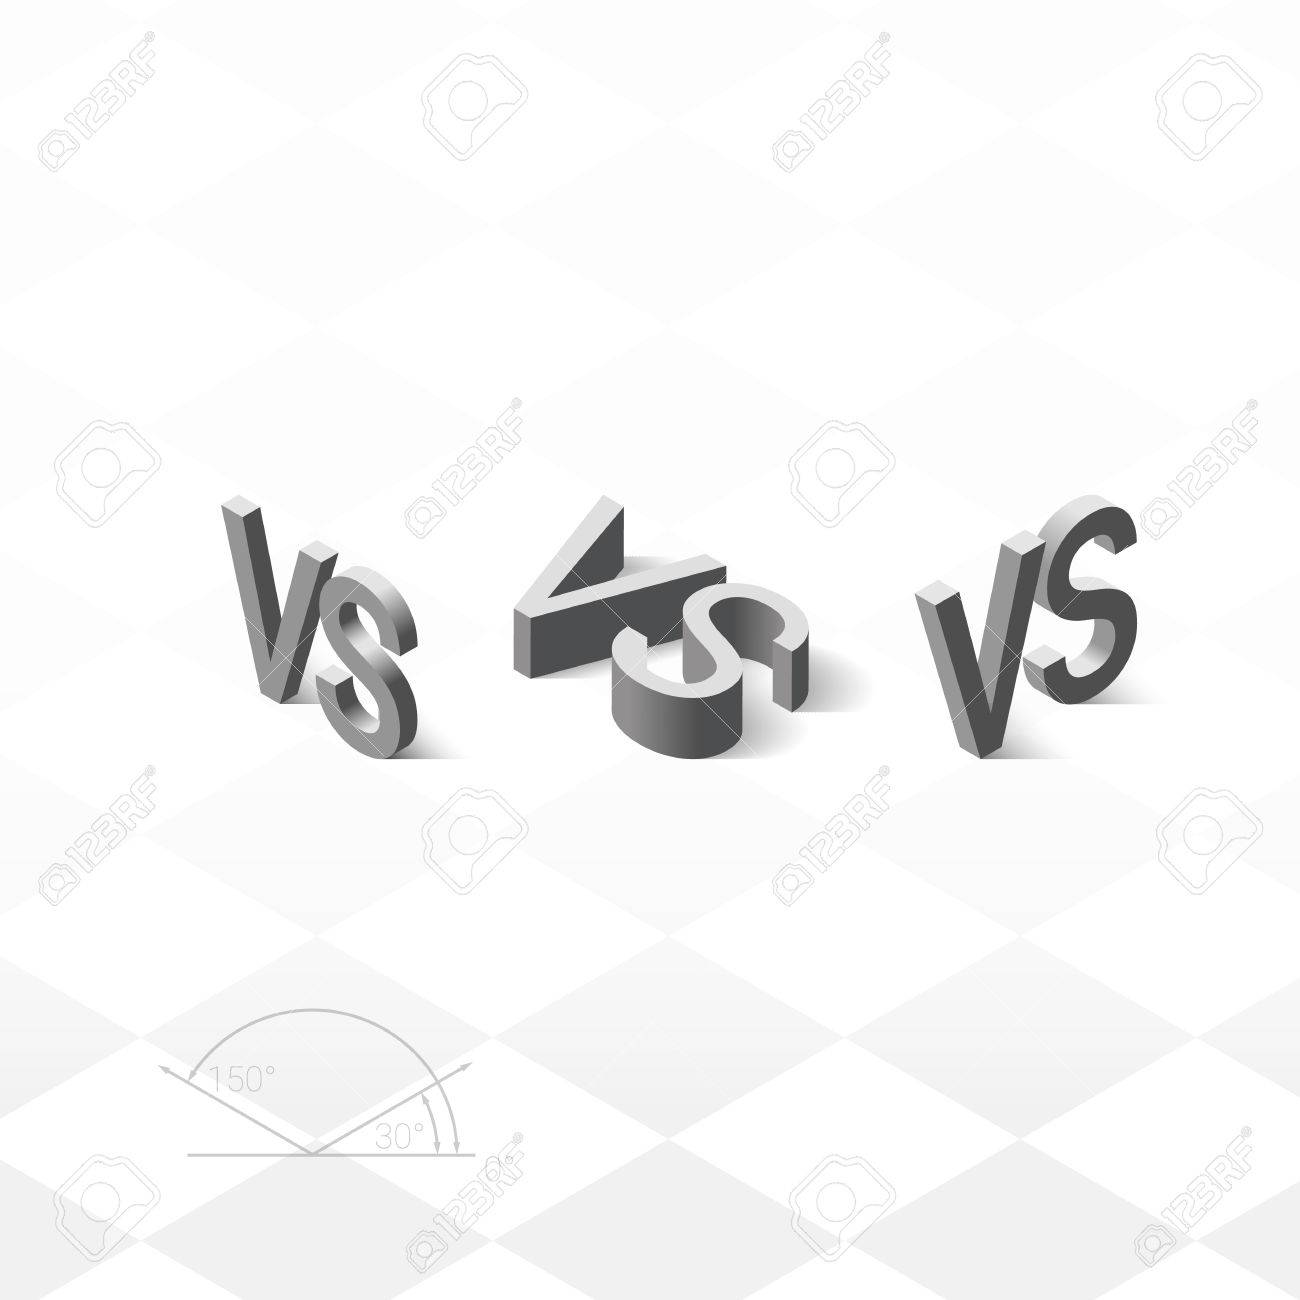 Versus Letters Logo Grey Isometric Letters V And S Symbols Royalty